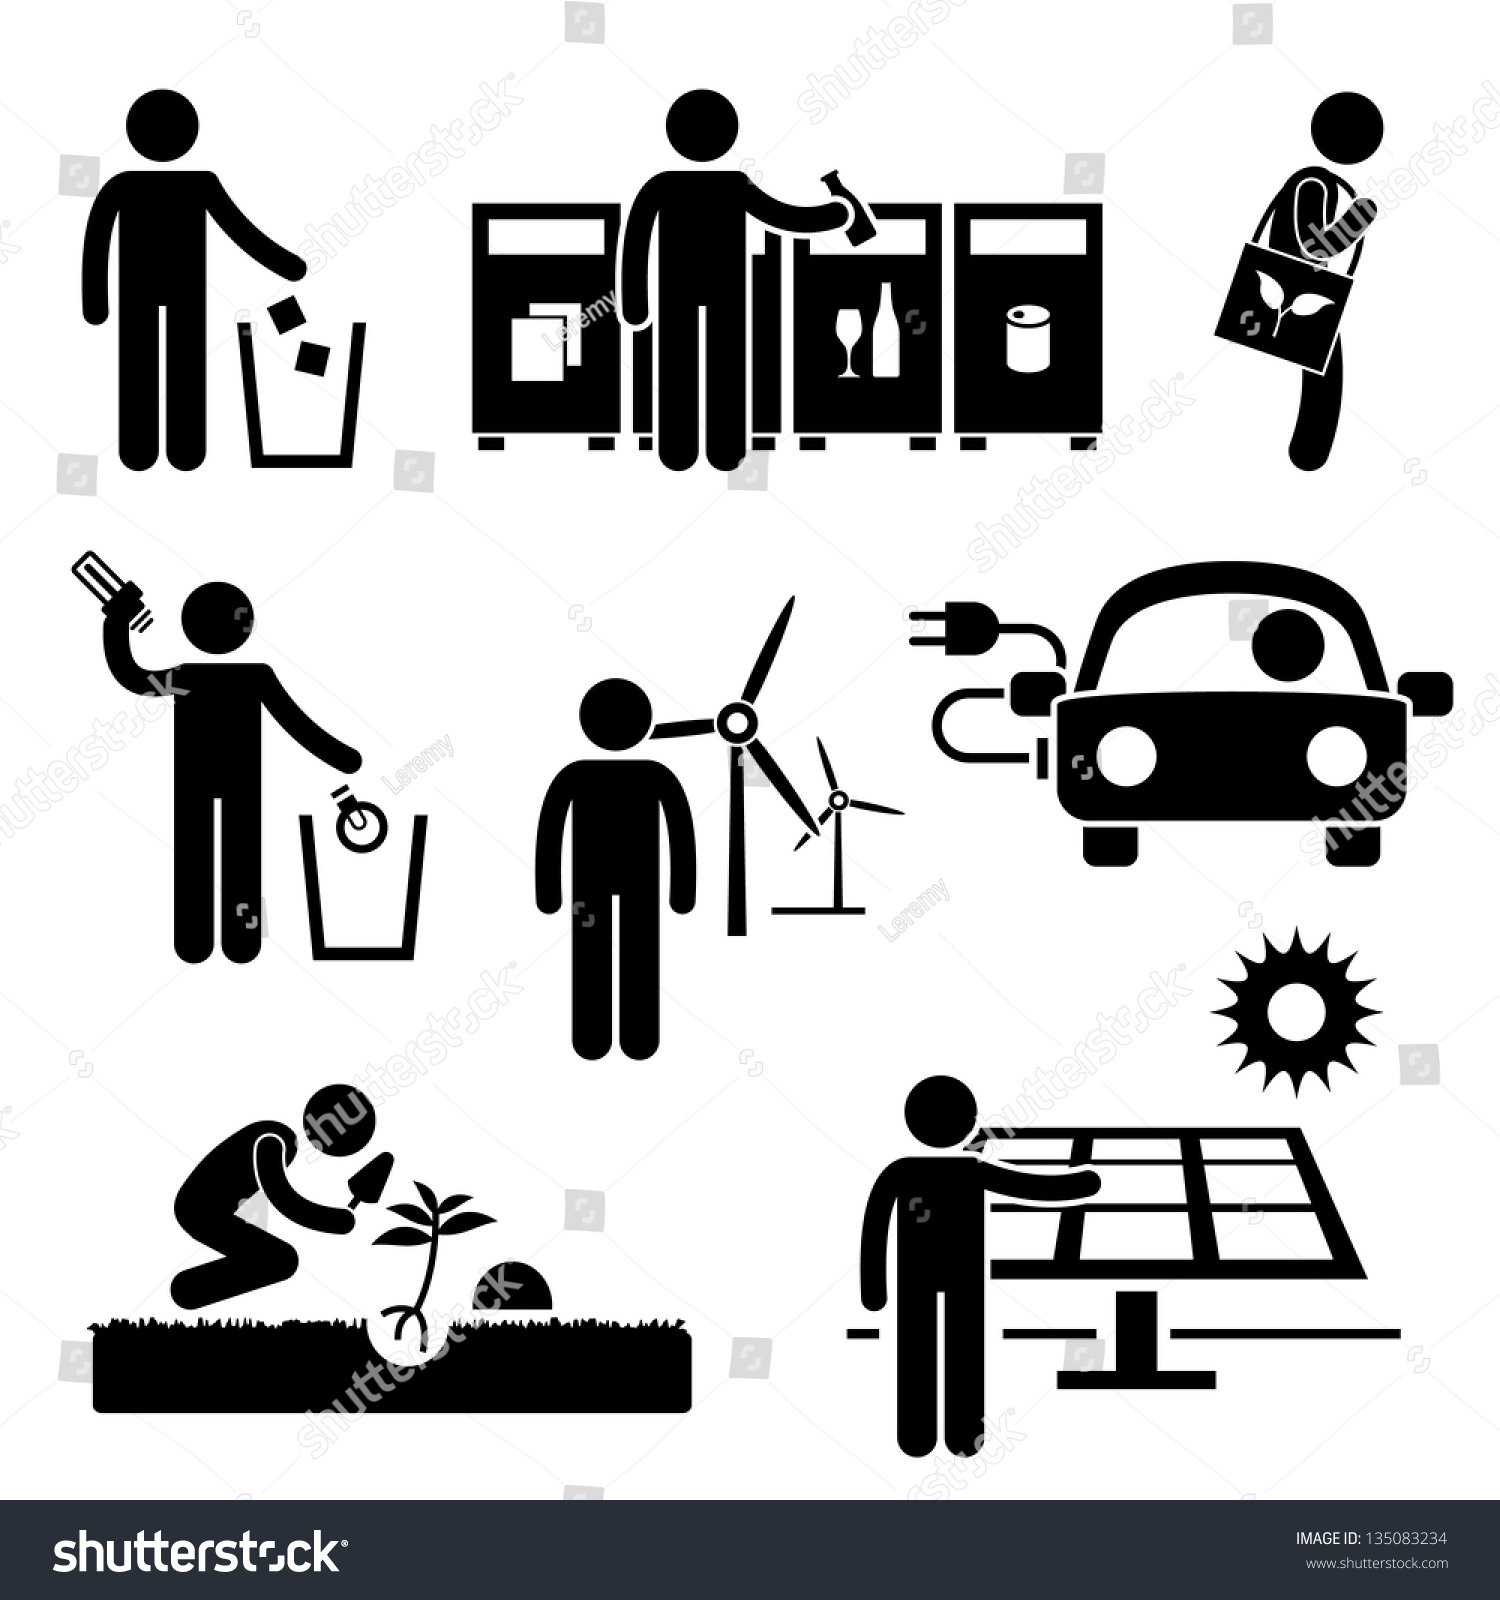 Sseenterprise co together with Stock Vector Man People Recycle Green Environment Energy Saving Stick Figure Pictogram Icon likewise Lending also Story 9670 additionally Solar Energy Education Presentation 8TeheMxdIY. on what needs electricity to work